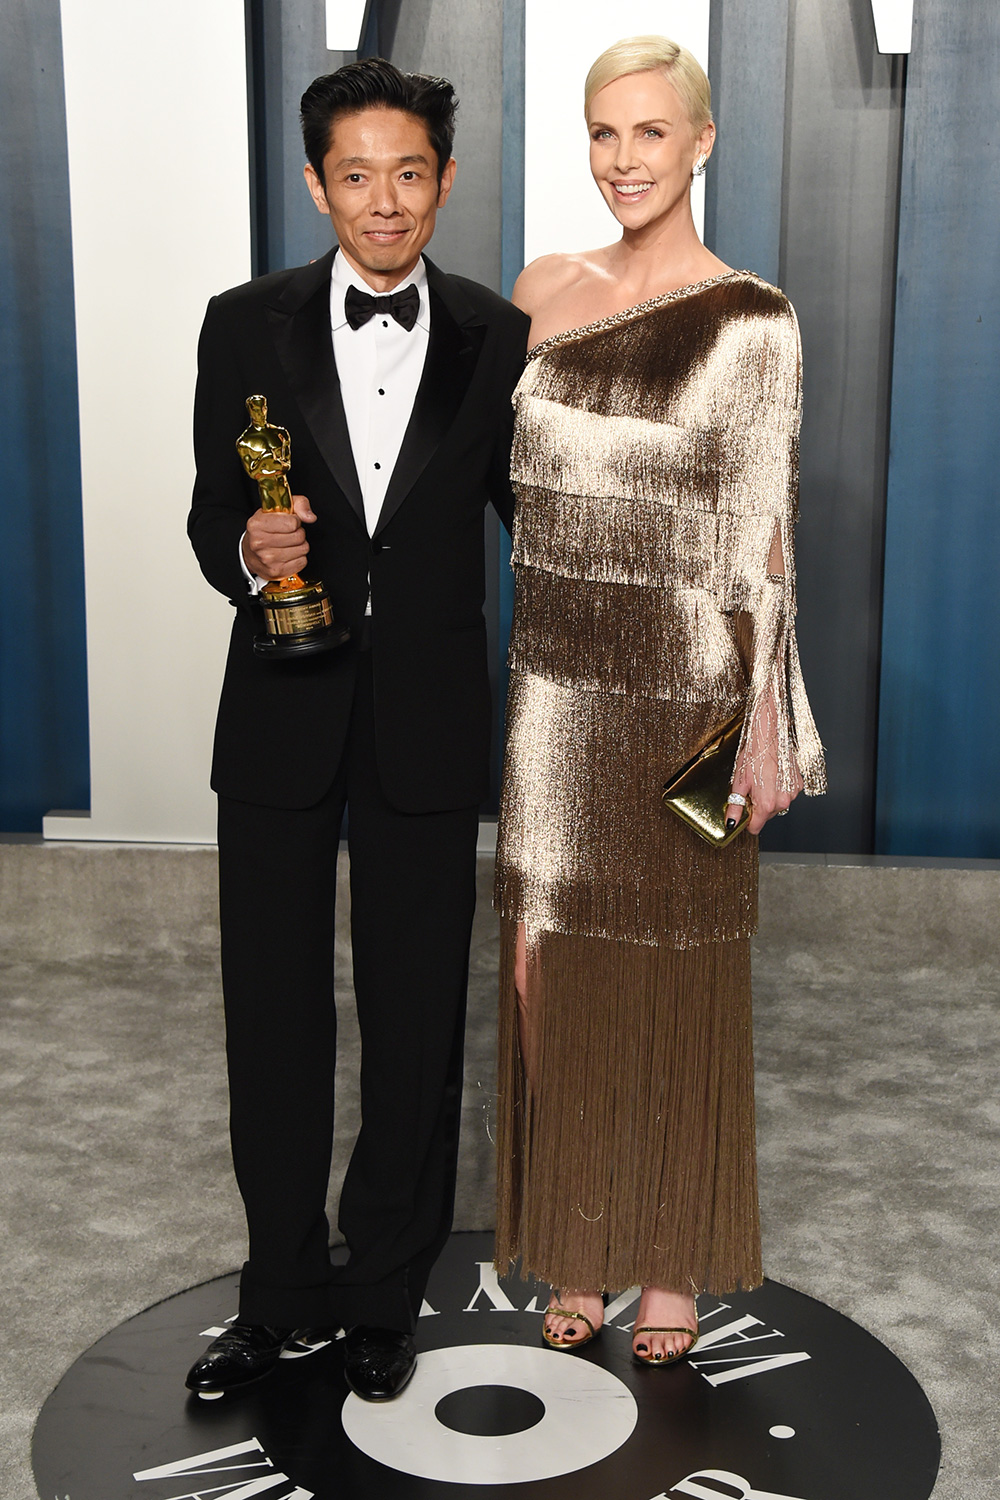 Kazuhiro Tsuji (L) and Charlize Theron attend the 2020 Vanity Fair Oscar Party hosted by Radhika Jones at Wallis Annenberg Center for the Performing Arts on February 09, 2020 in Beverly Hills, California